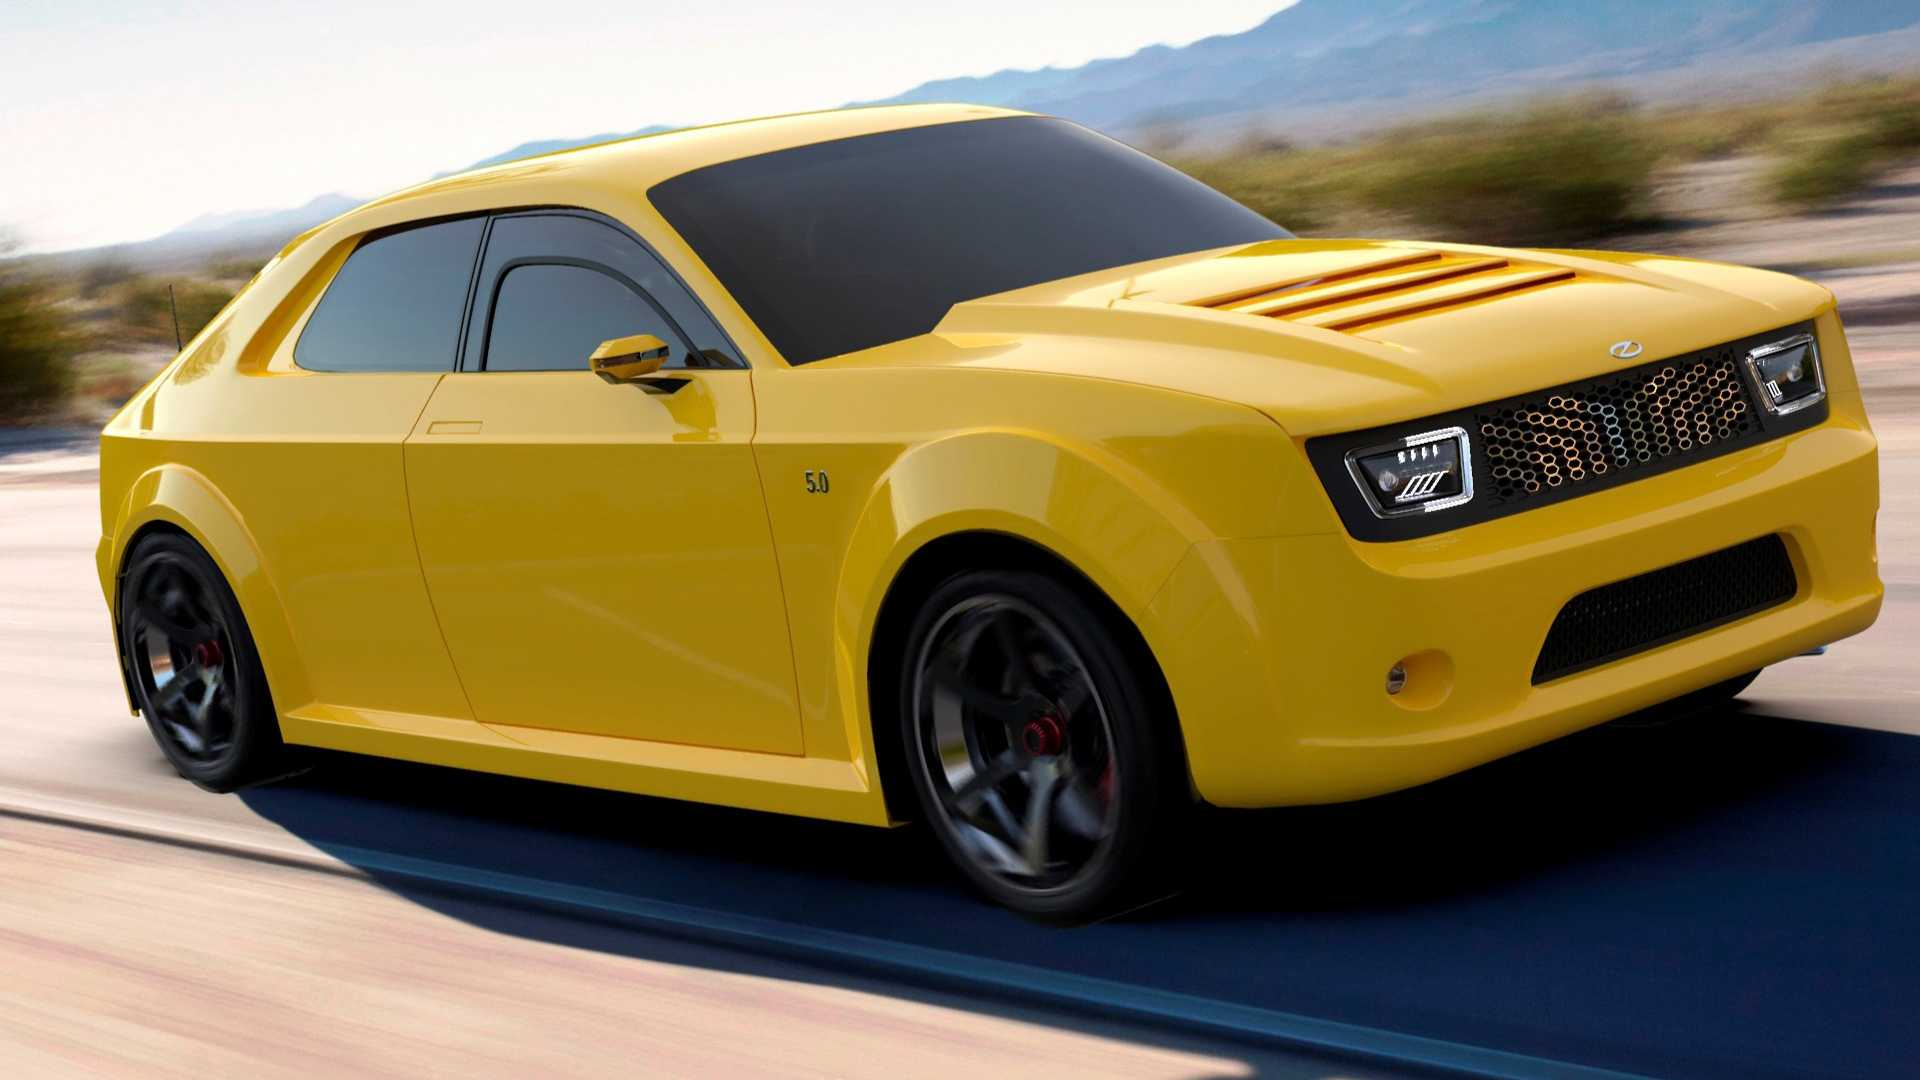 Yugo Gt 5000 Is A Hatchback Revival You Didn T Know You Wanted